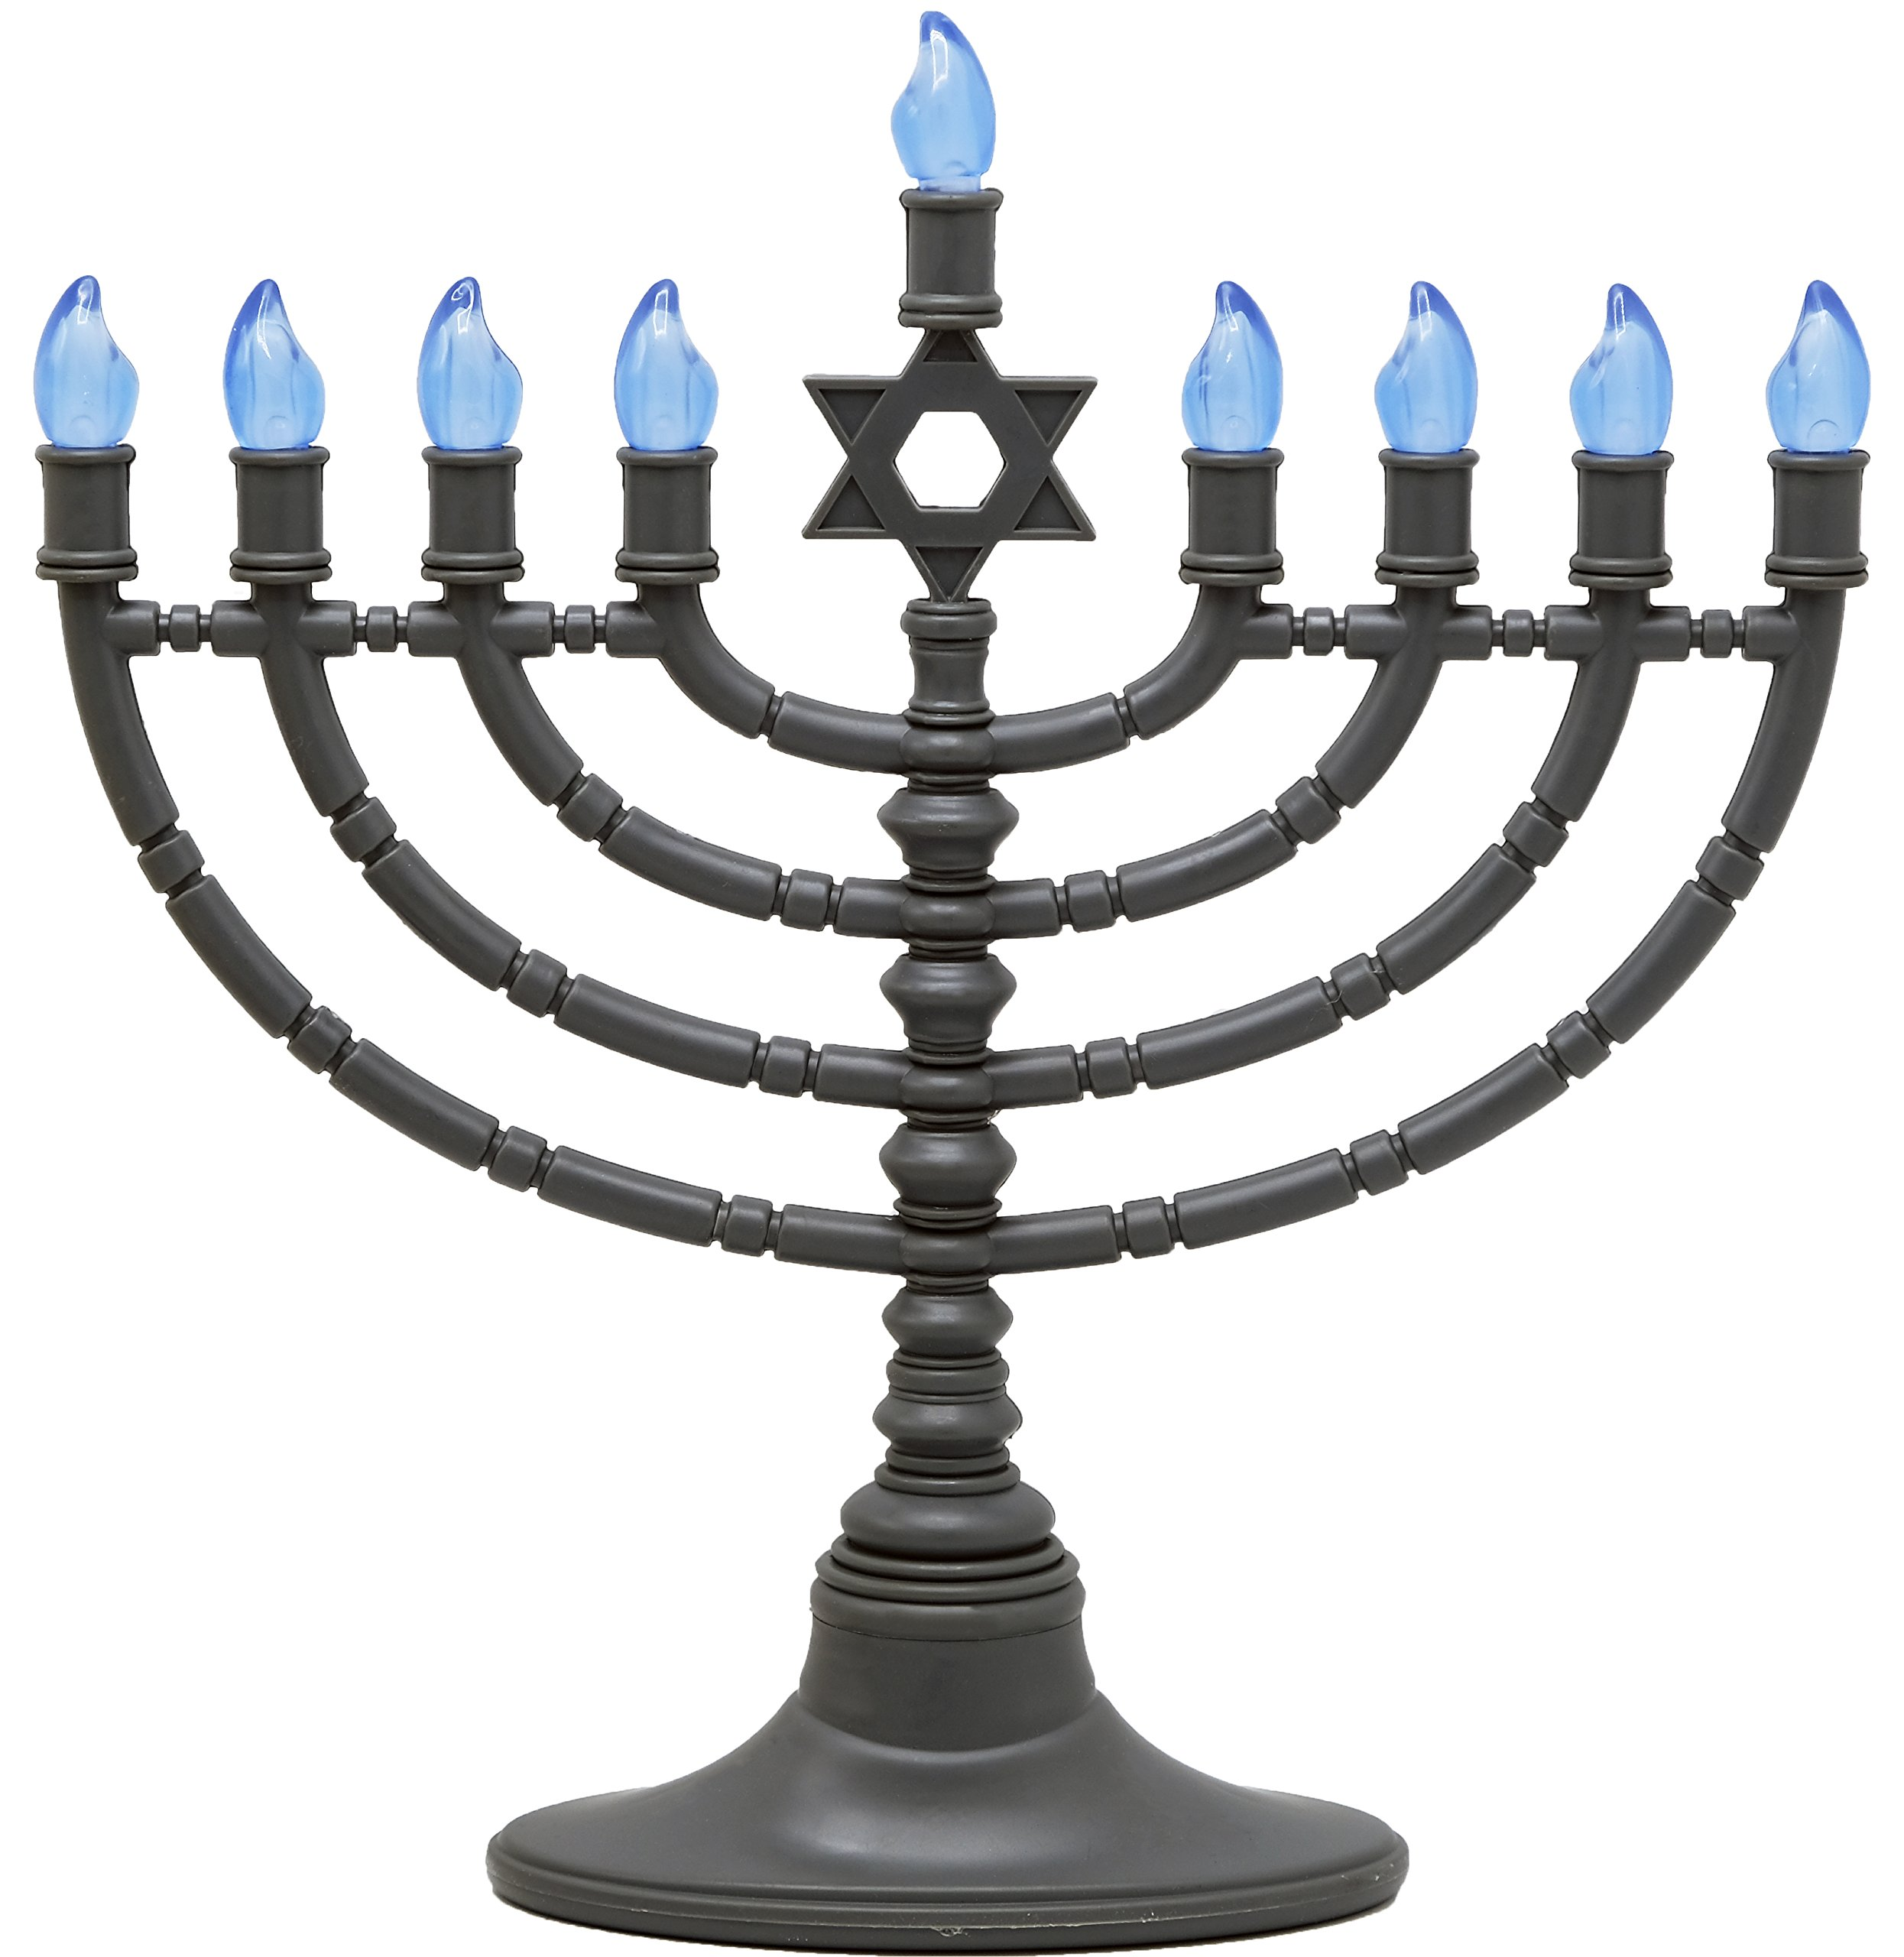 Electric Menorah Traditional Star Of David Design Classy Gray With Clear Bulbs ... by The Menorah Company